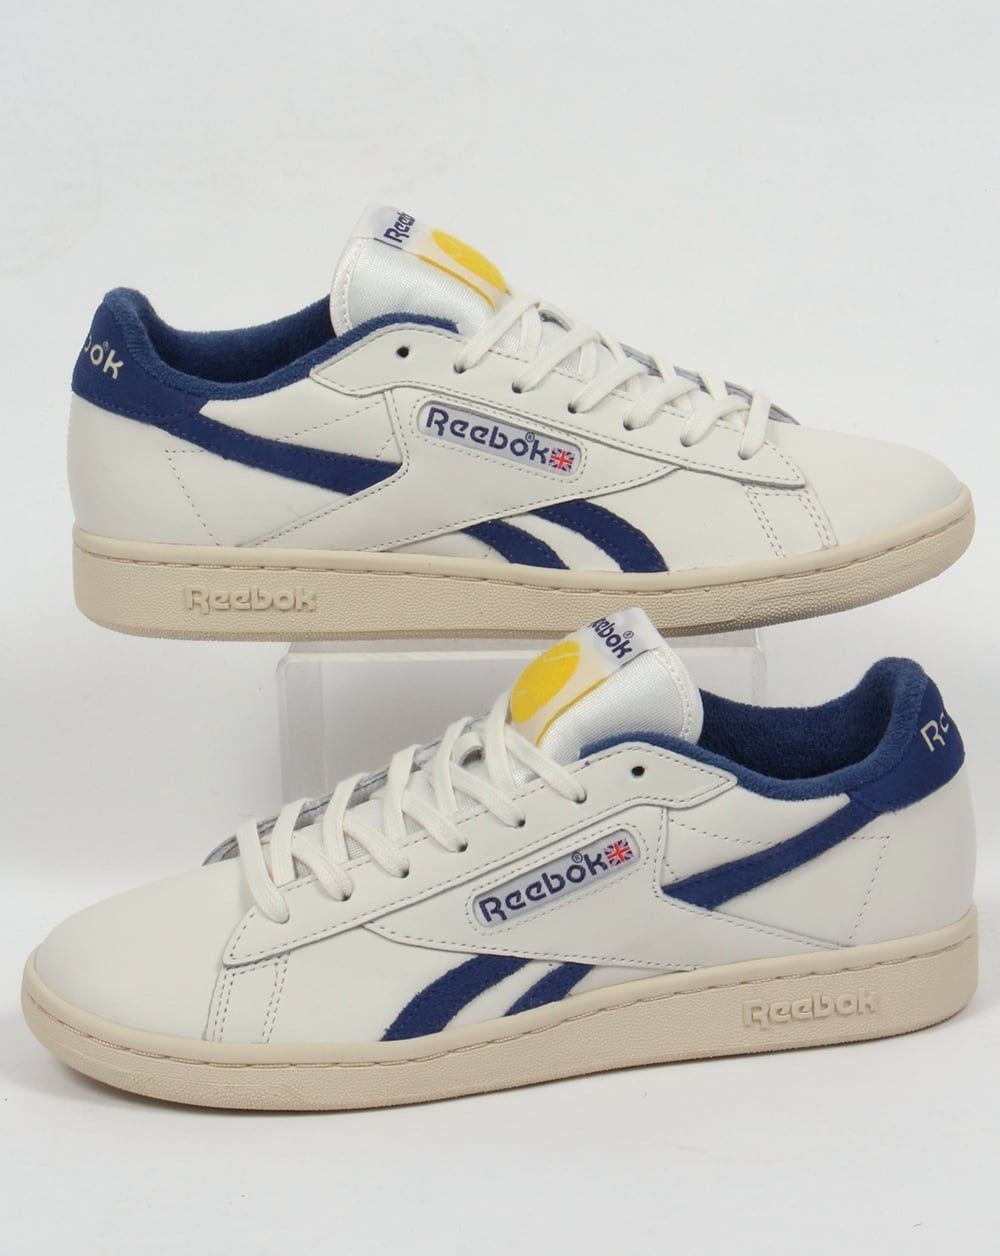 Reebok Classic High Top Trainers Size 5 UK White